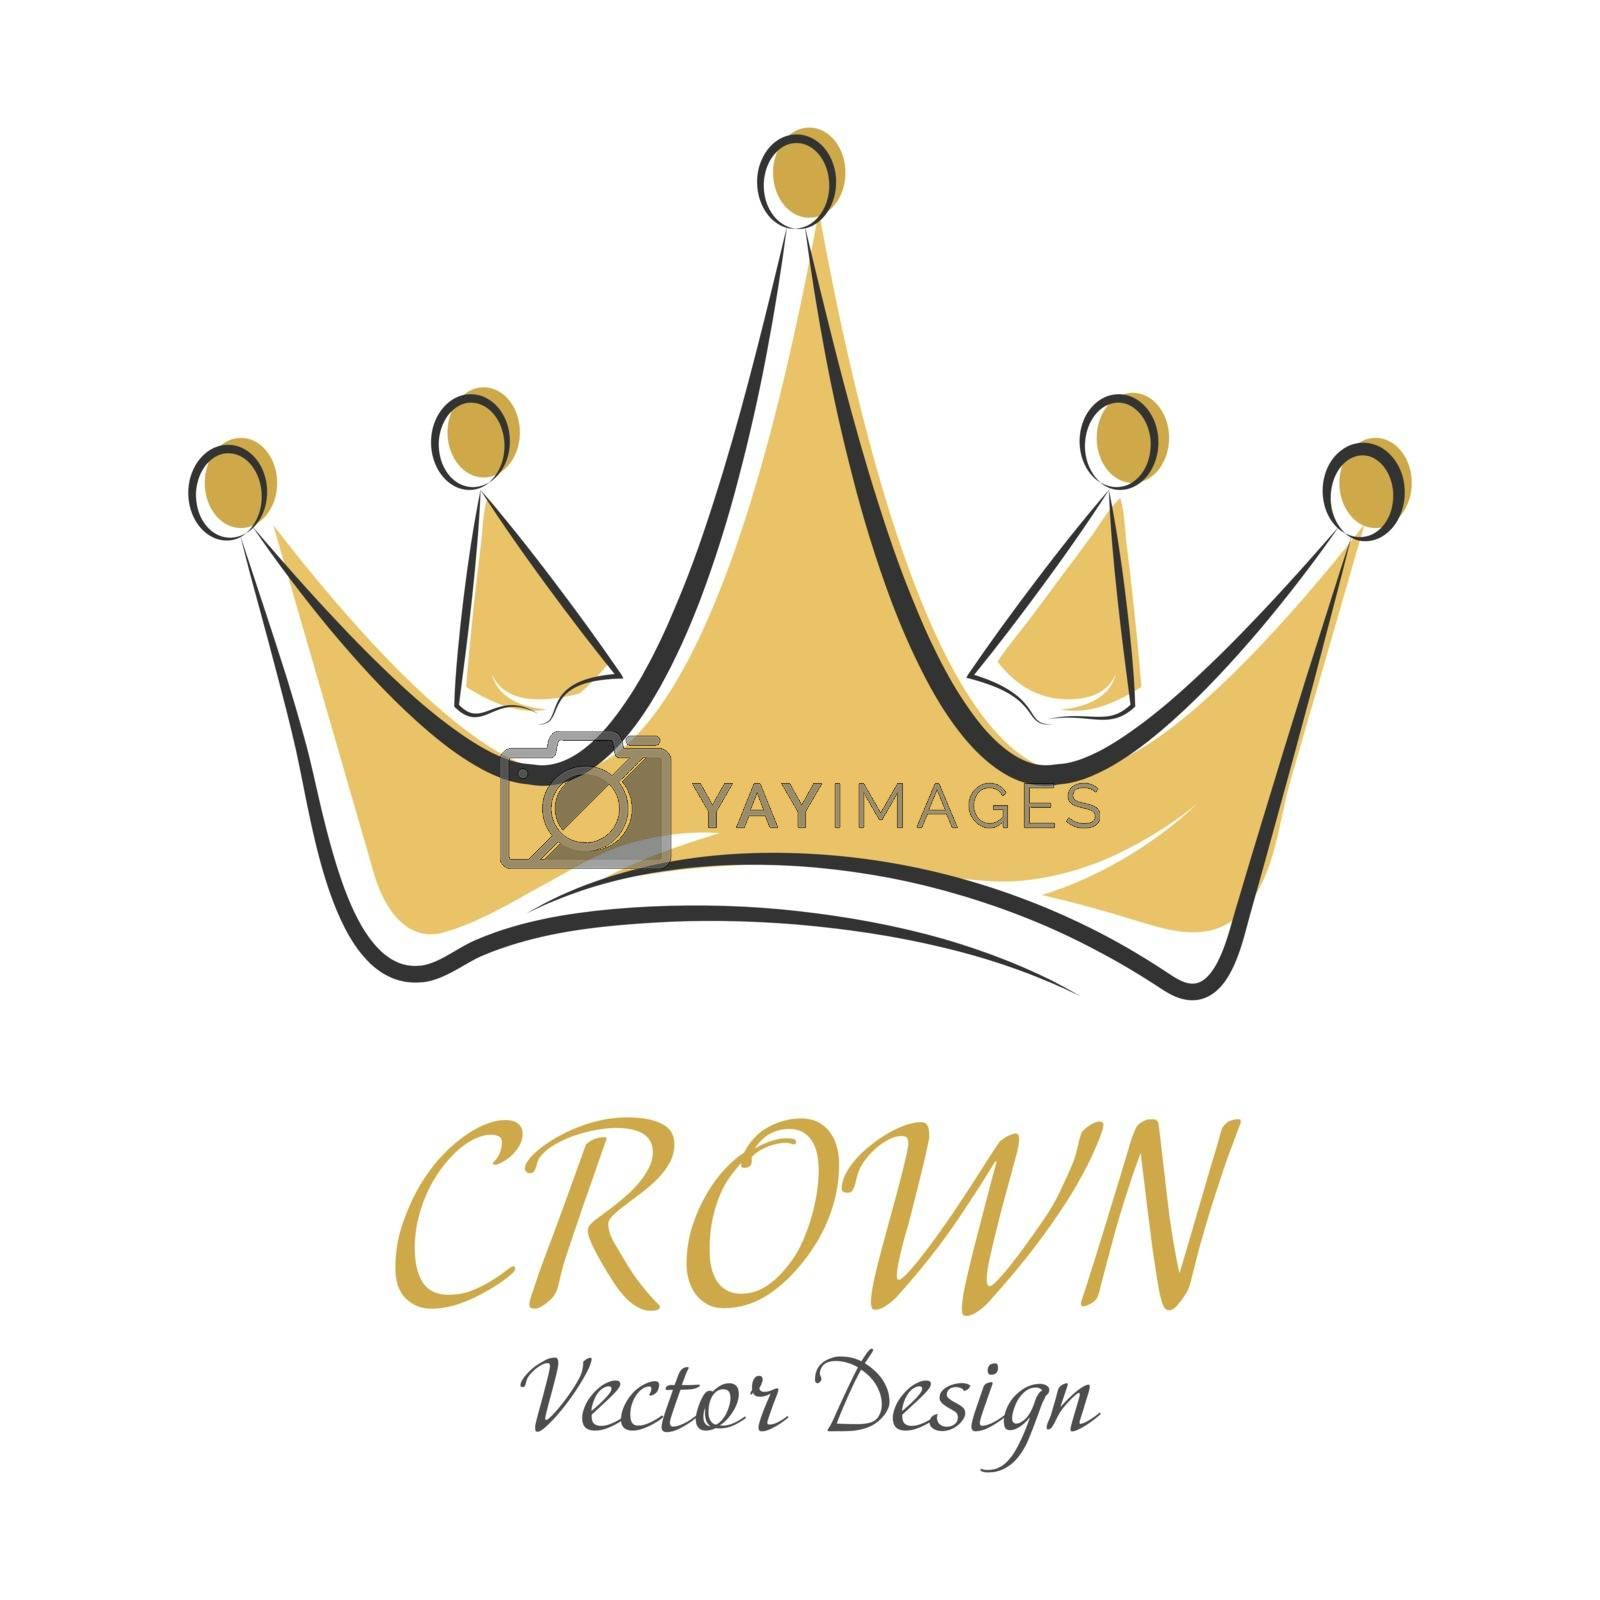 Сrown. Simple vector illustration for logo, sticker, logo or creative design isolated on white background